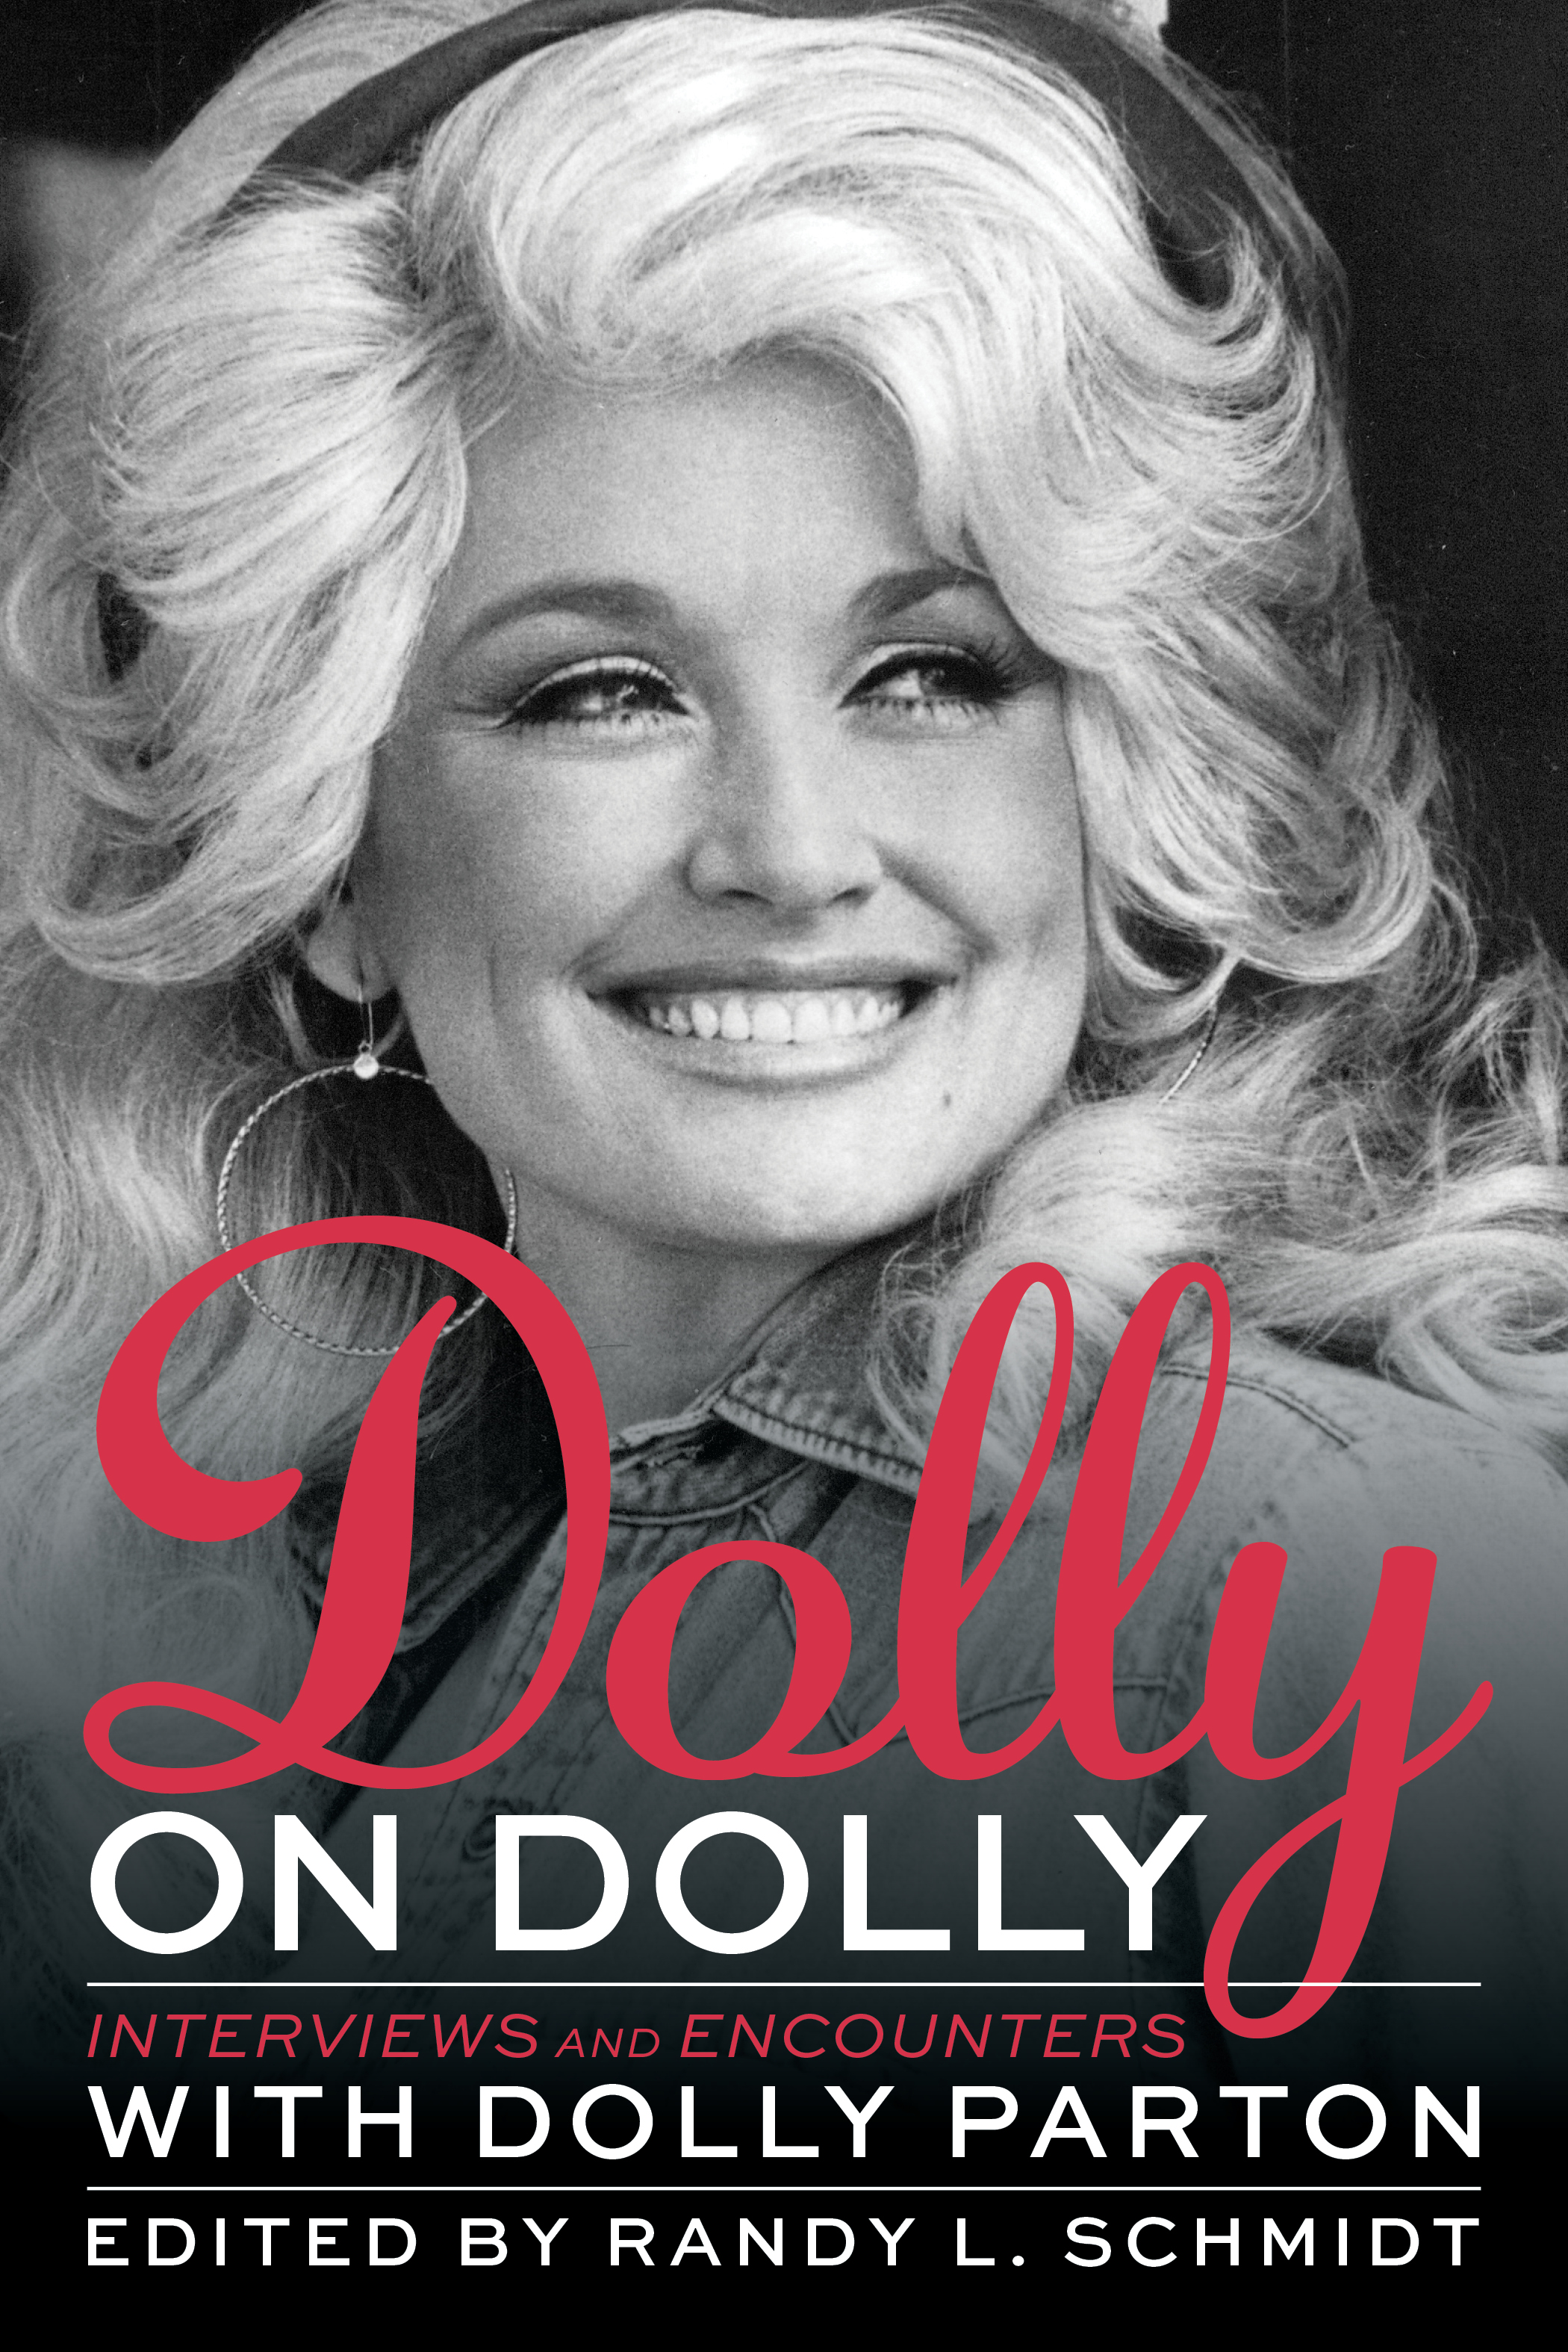 Dolly on Dolly: Interviews and Encounters with Dolly Parton book cover; Cover art courtesy Chicago Review Press